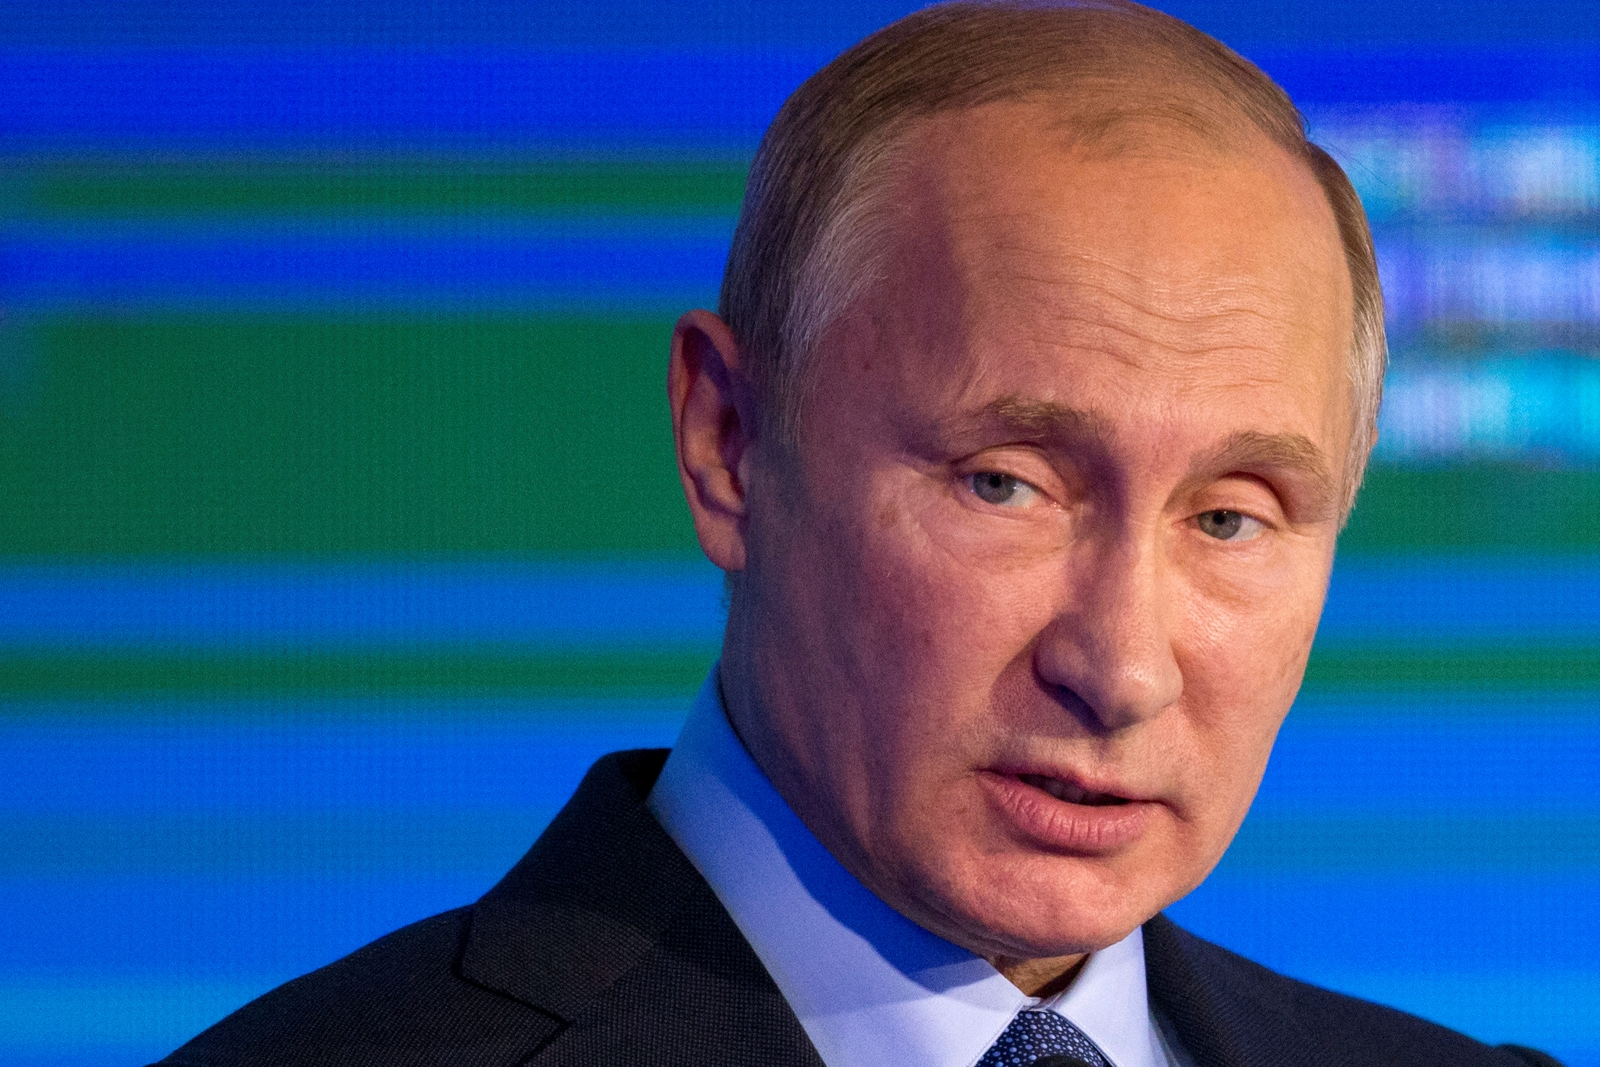 Putin claims US allegations of Russia attempting to hack presidential elections is a ploy